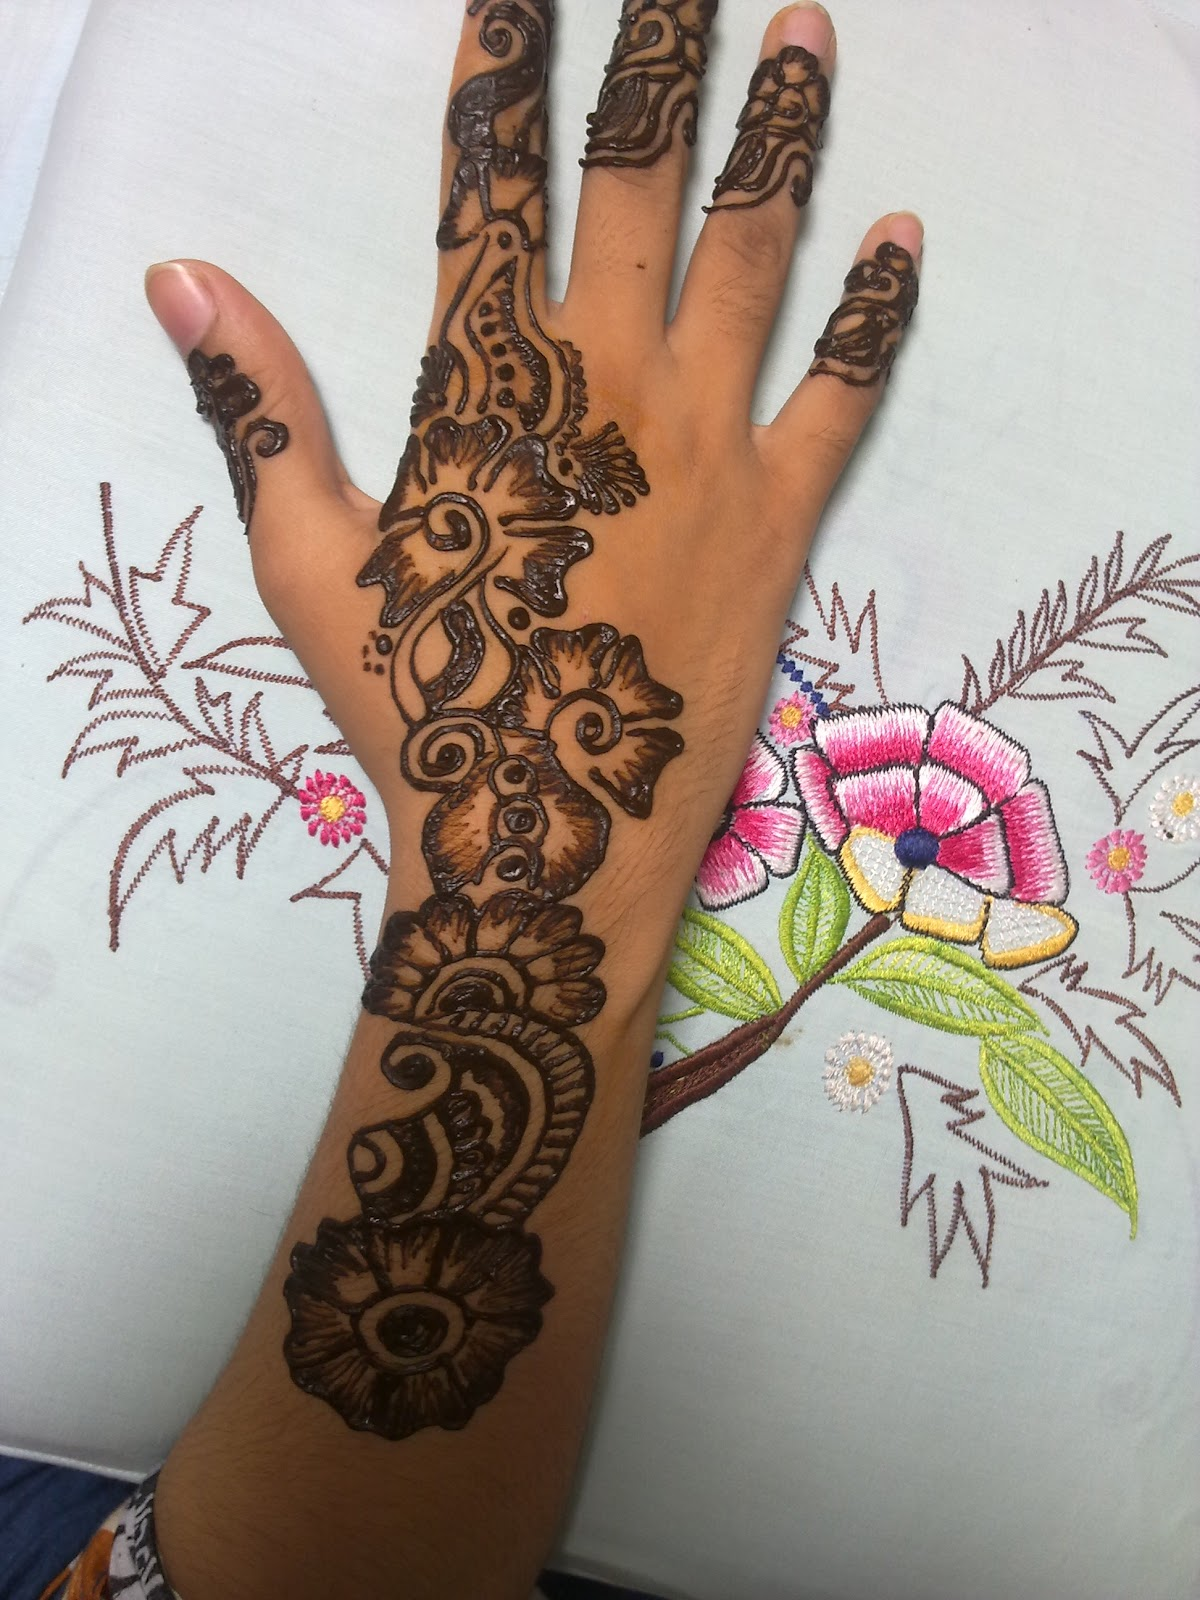 New Mehndi Patterns : Mehndi designs for hands latest arabic